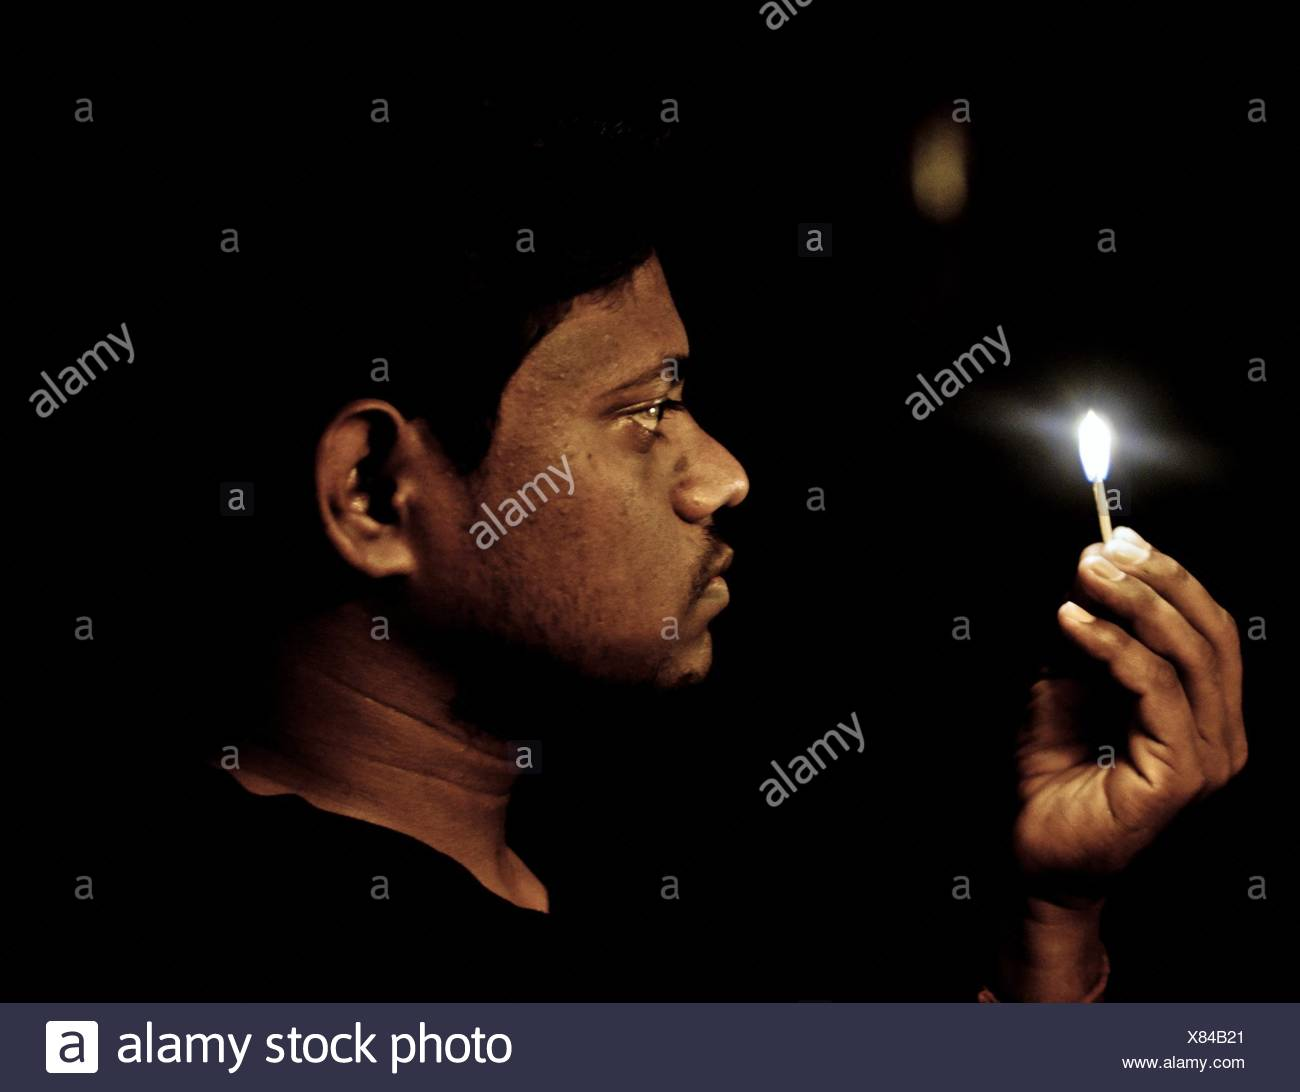 Young Man Holding Burning Matchstick At Night - Stock Image